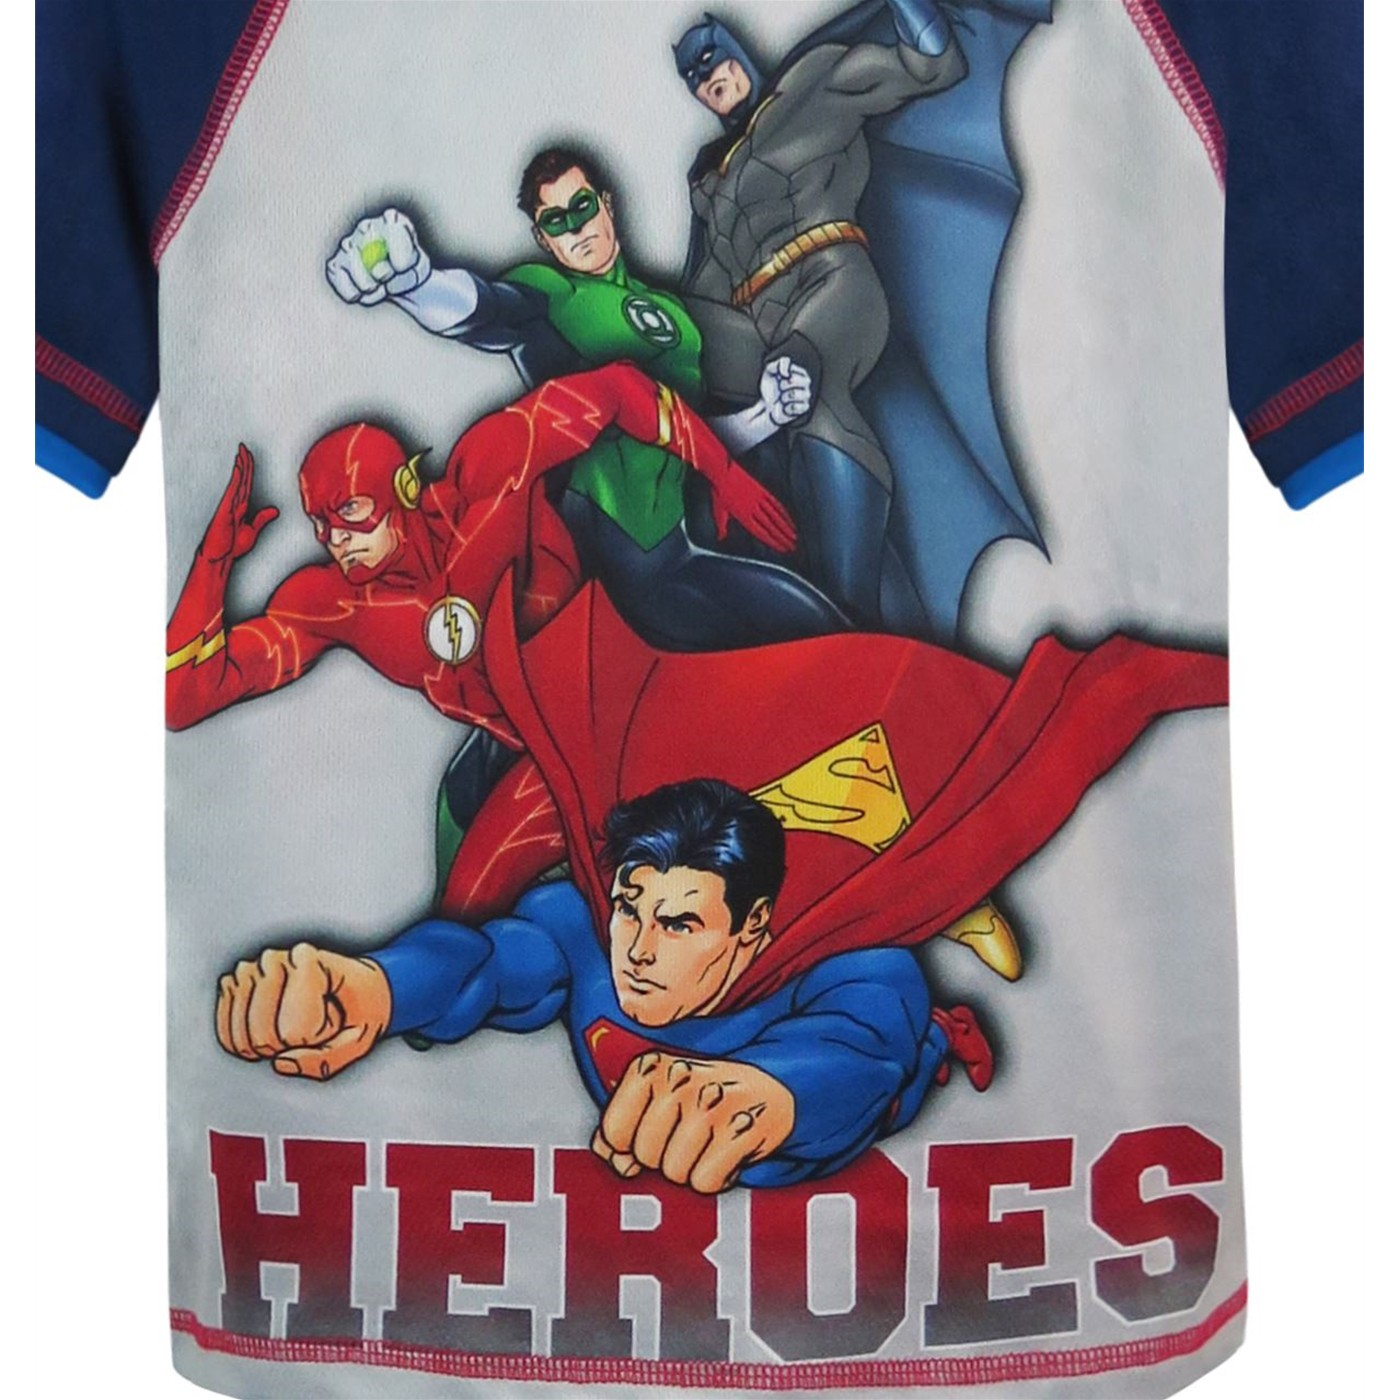 Justice League Heroes Juvenile Top & Short Set